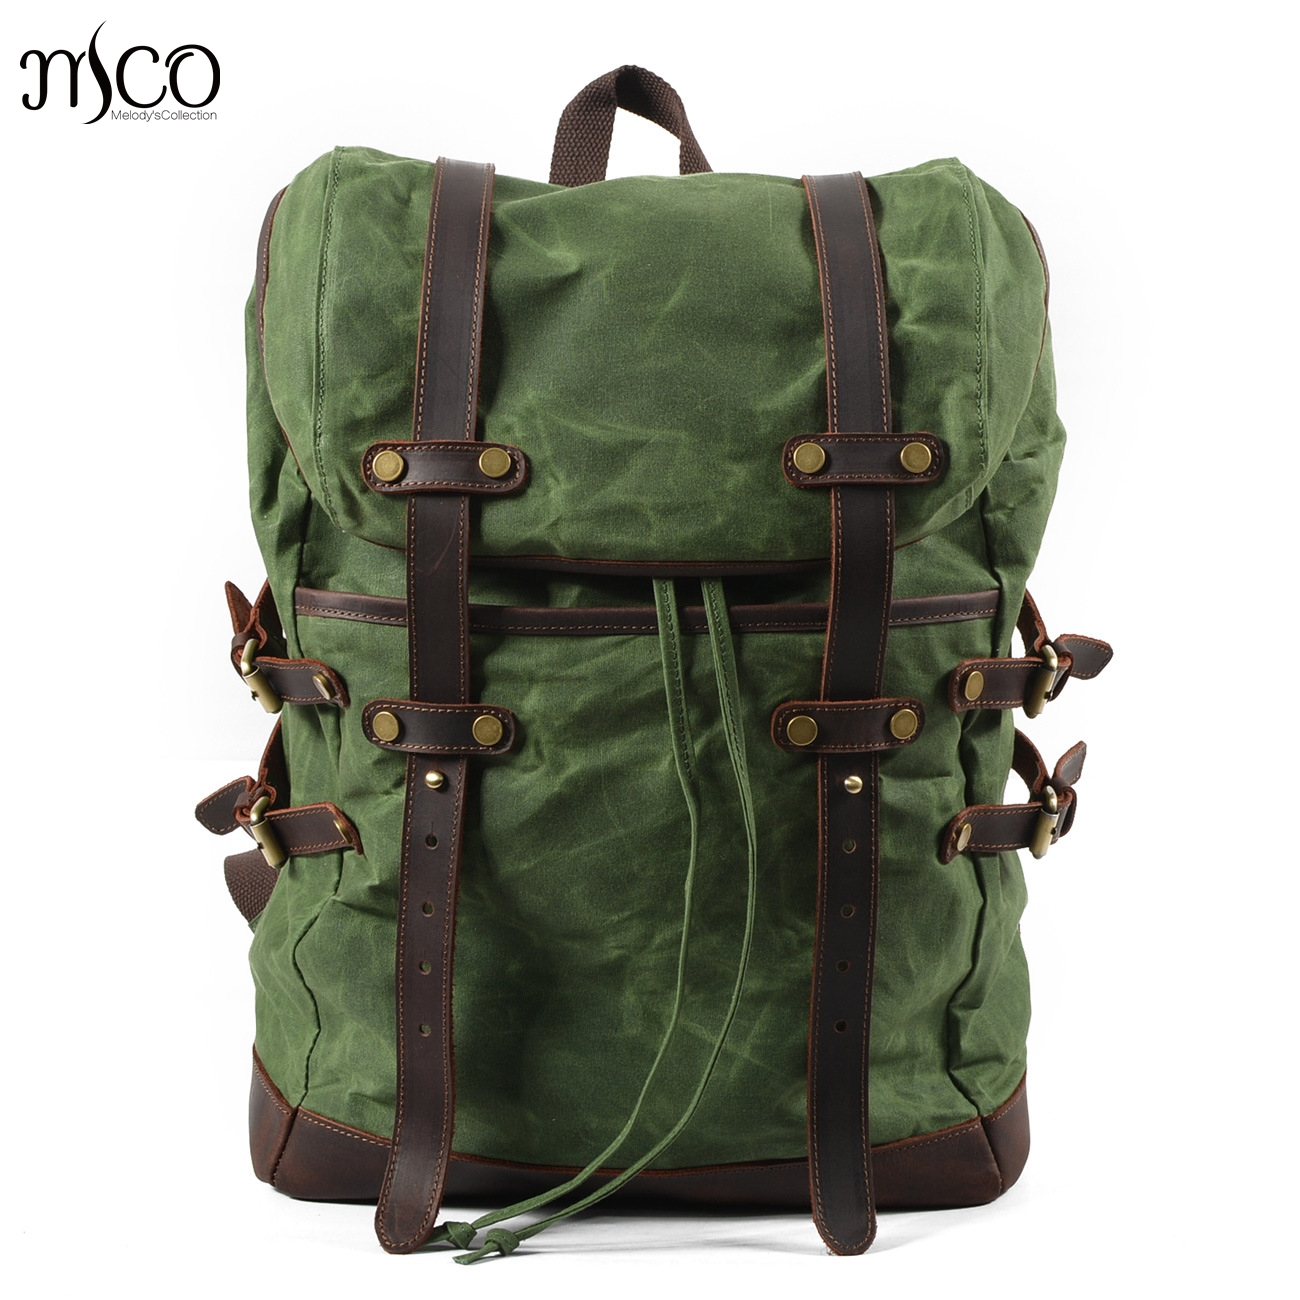 Men Backpacks Vintage Waxed Canvas Leather School Military Backpack Male  Large Capacity Waterproof Bagpack Travel Rucksack Bag 0c5ef3ed1f